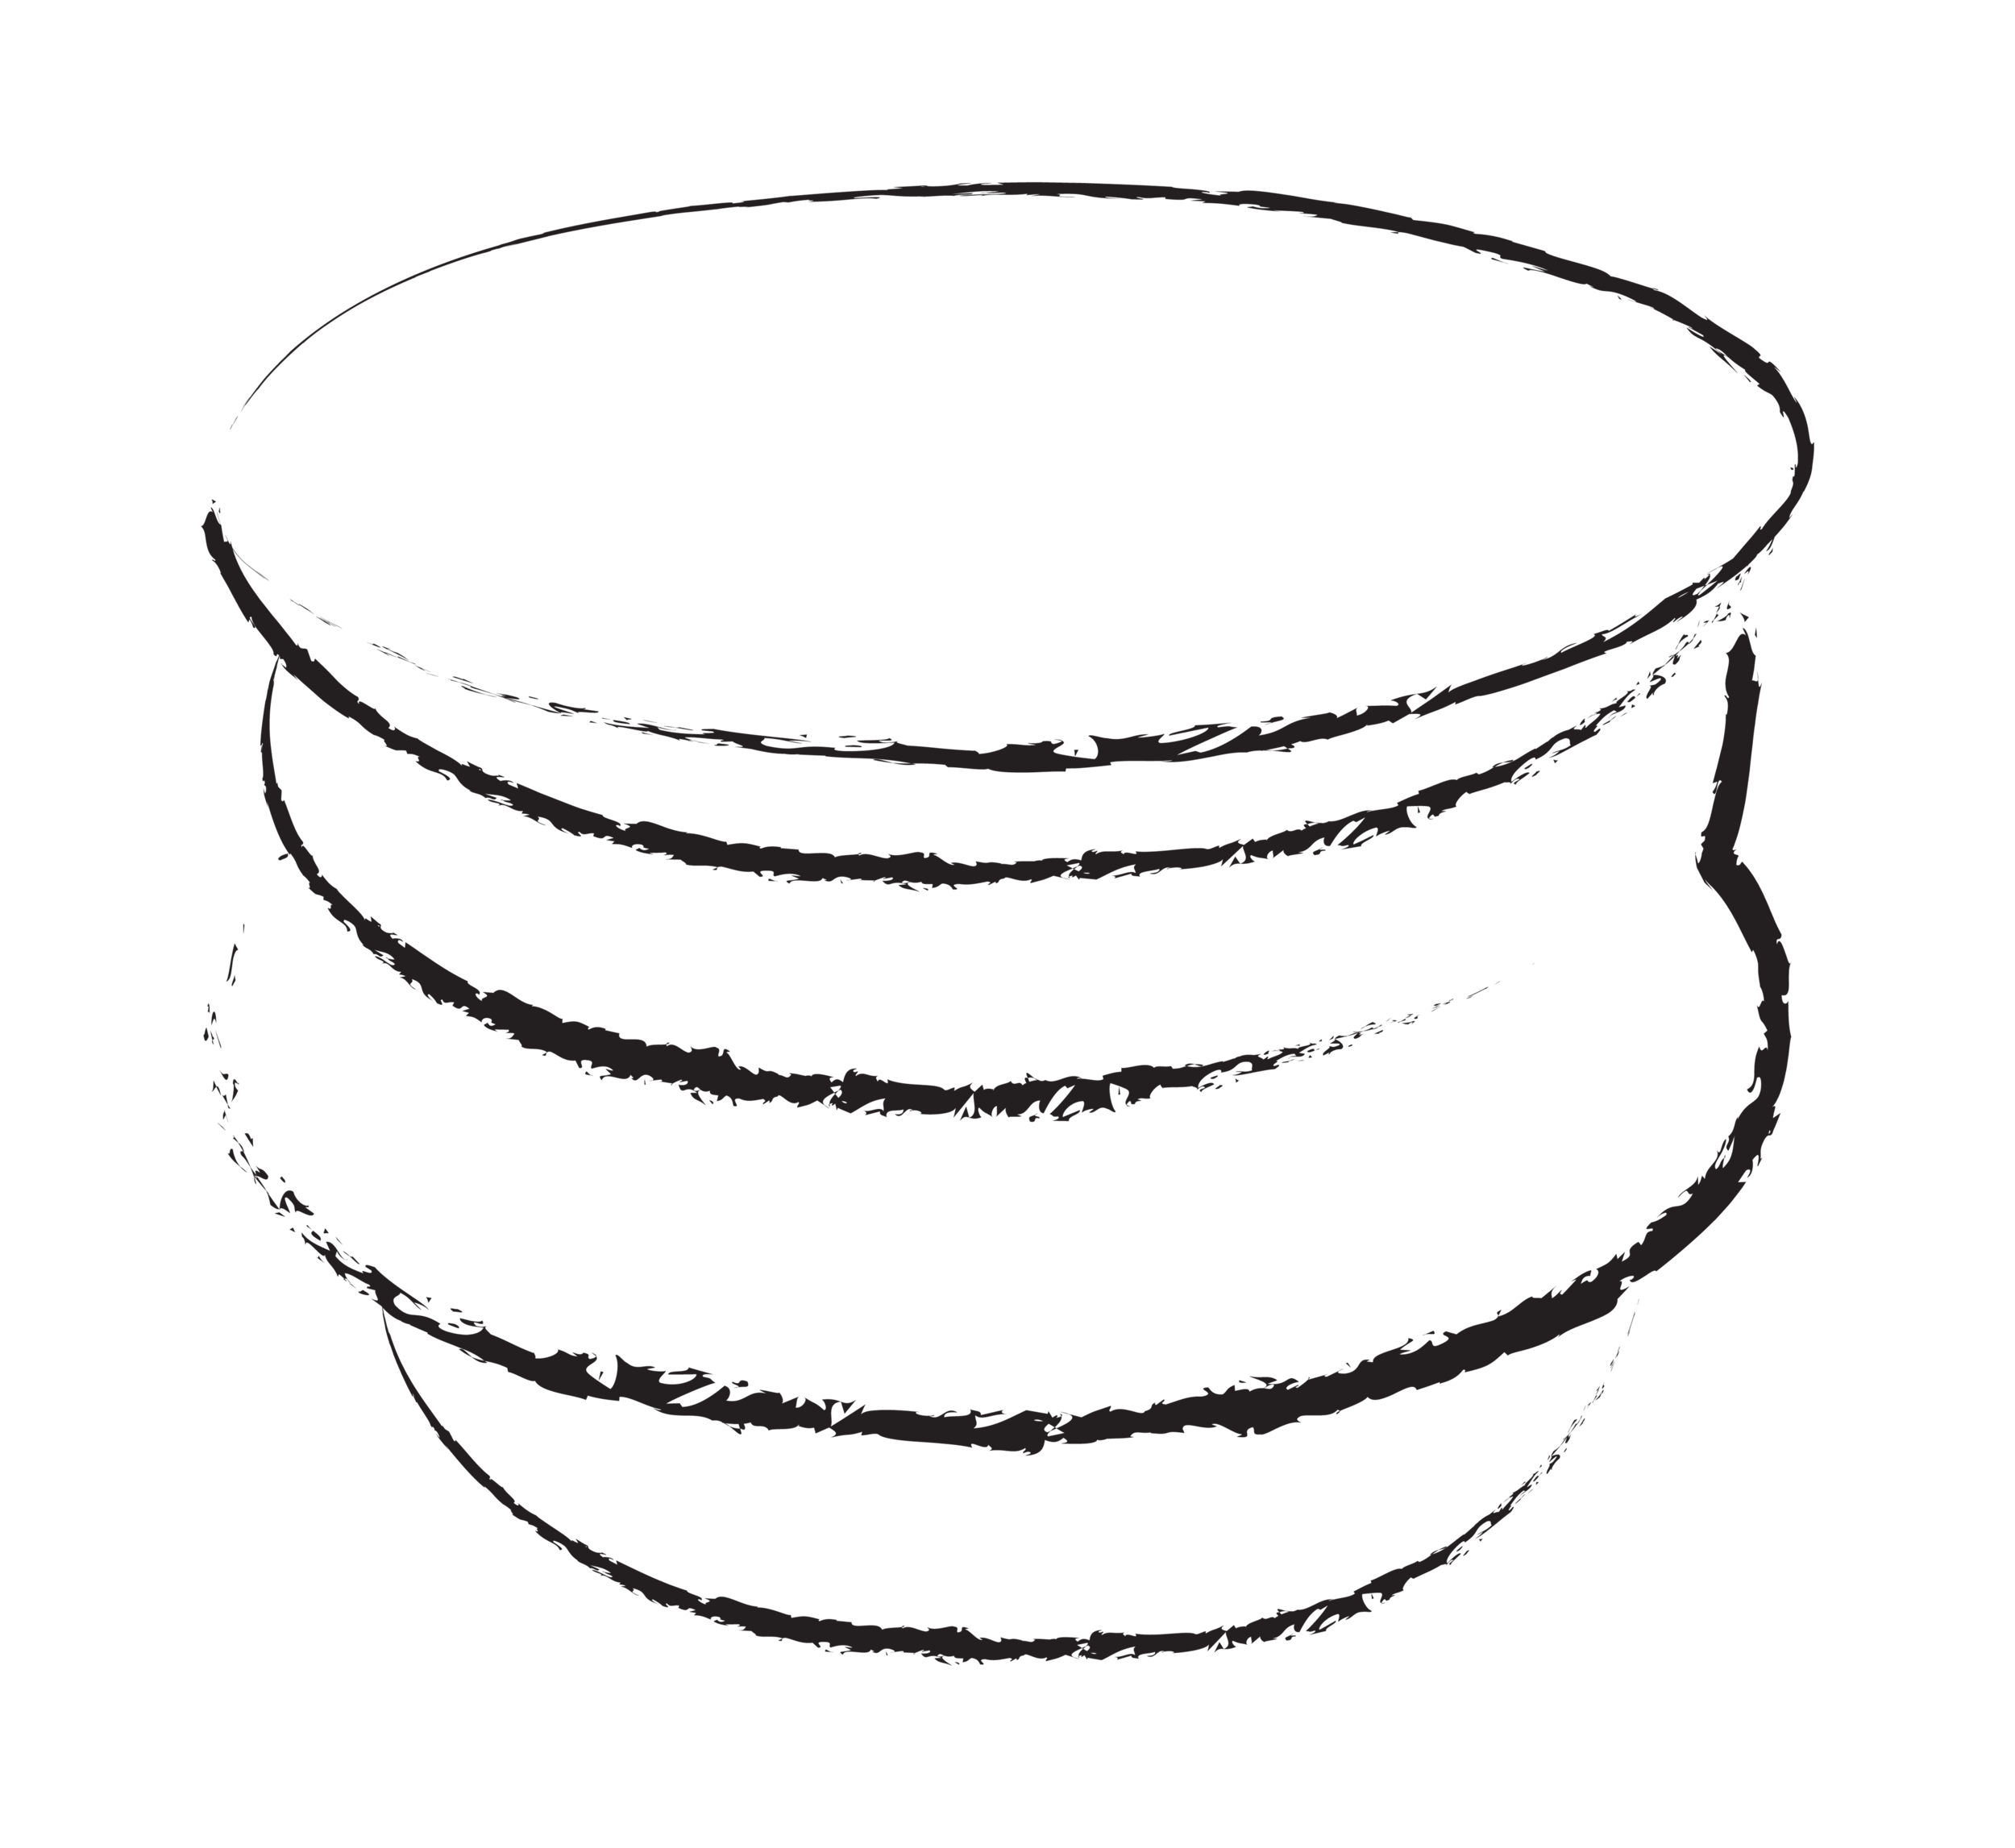 vessel_forms-02.png